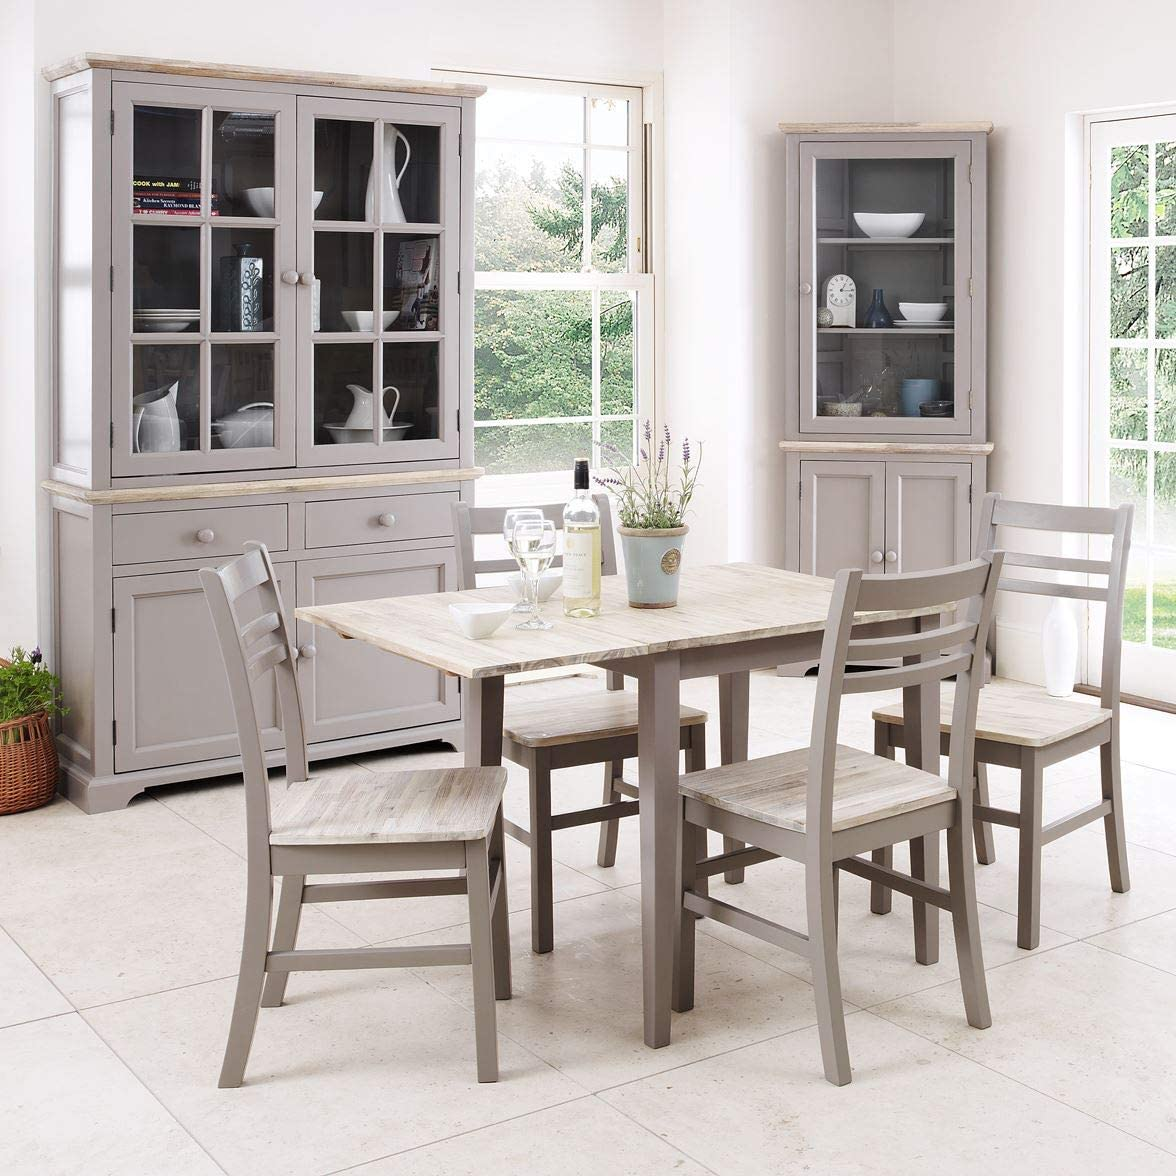 Florence dove grey square extending table and 10 country style